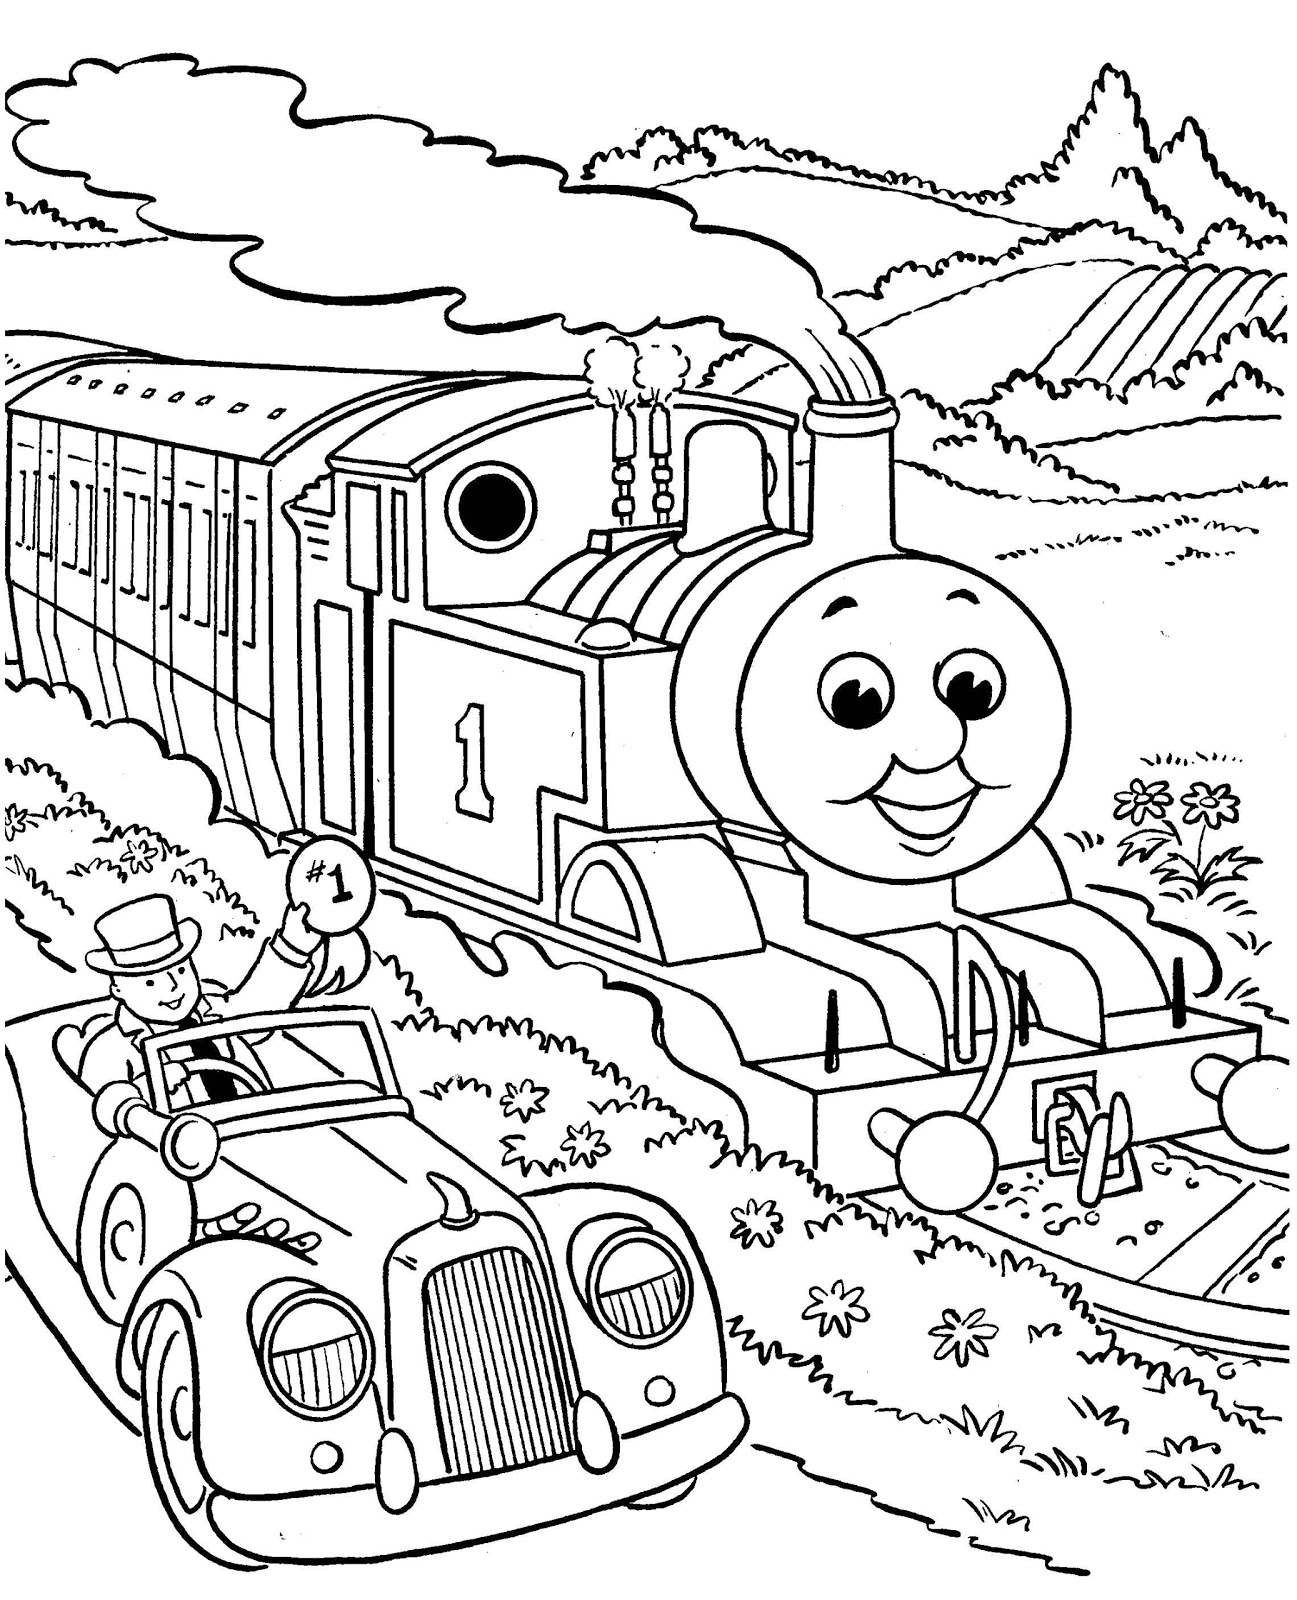 thomas train coloring pages - photo#28